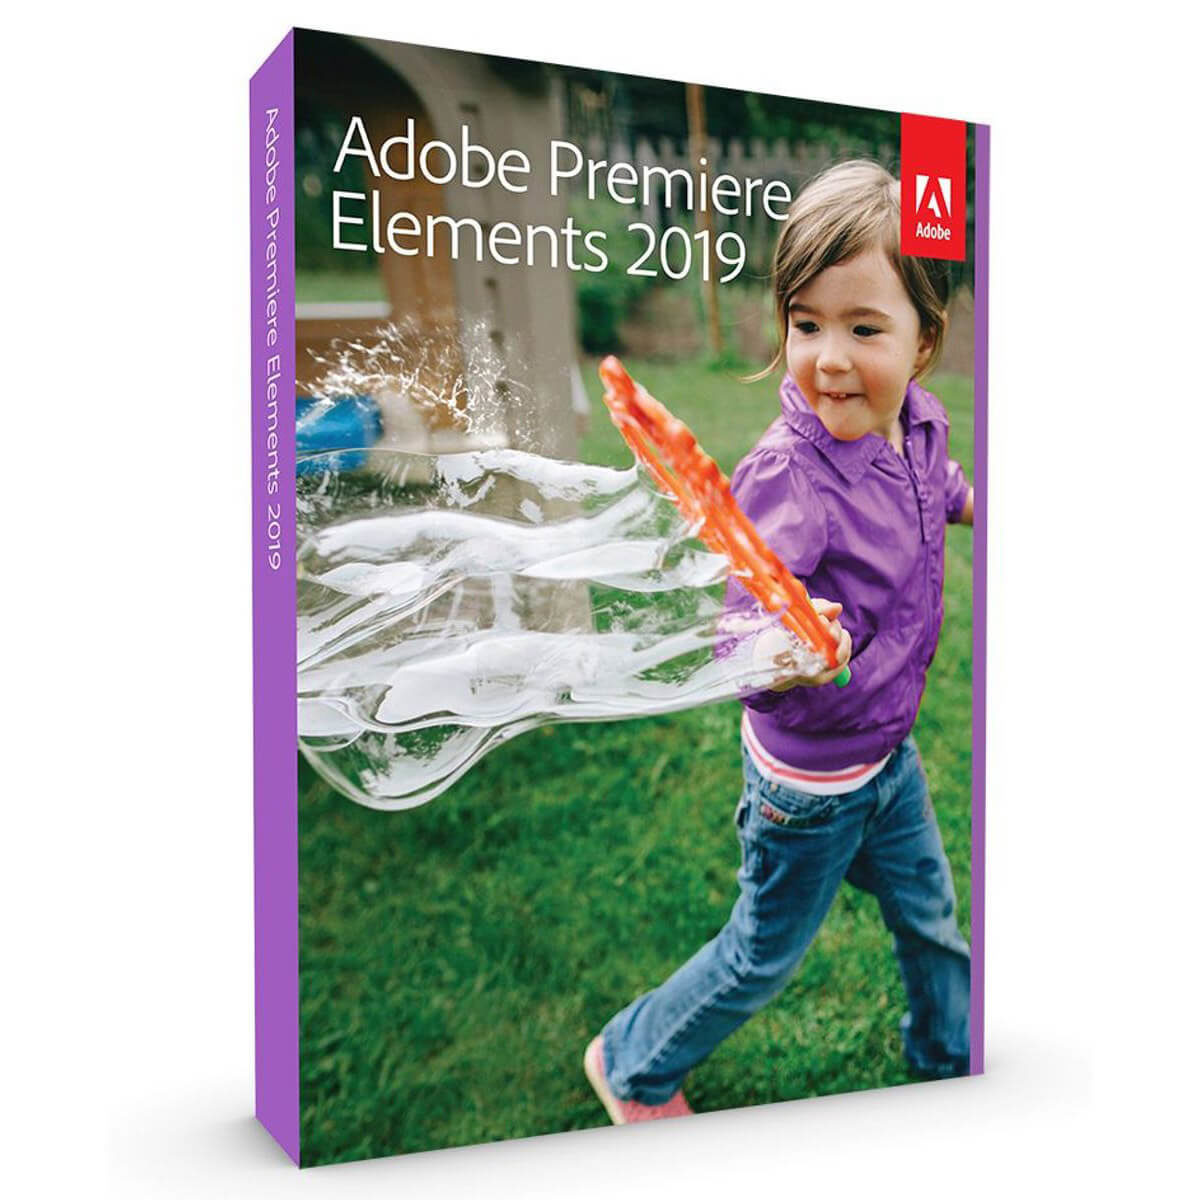 Afbeelding van Adobe Premiere Elements 2019 UK Mac/Windows